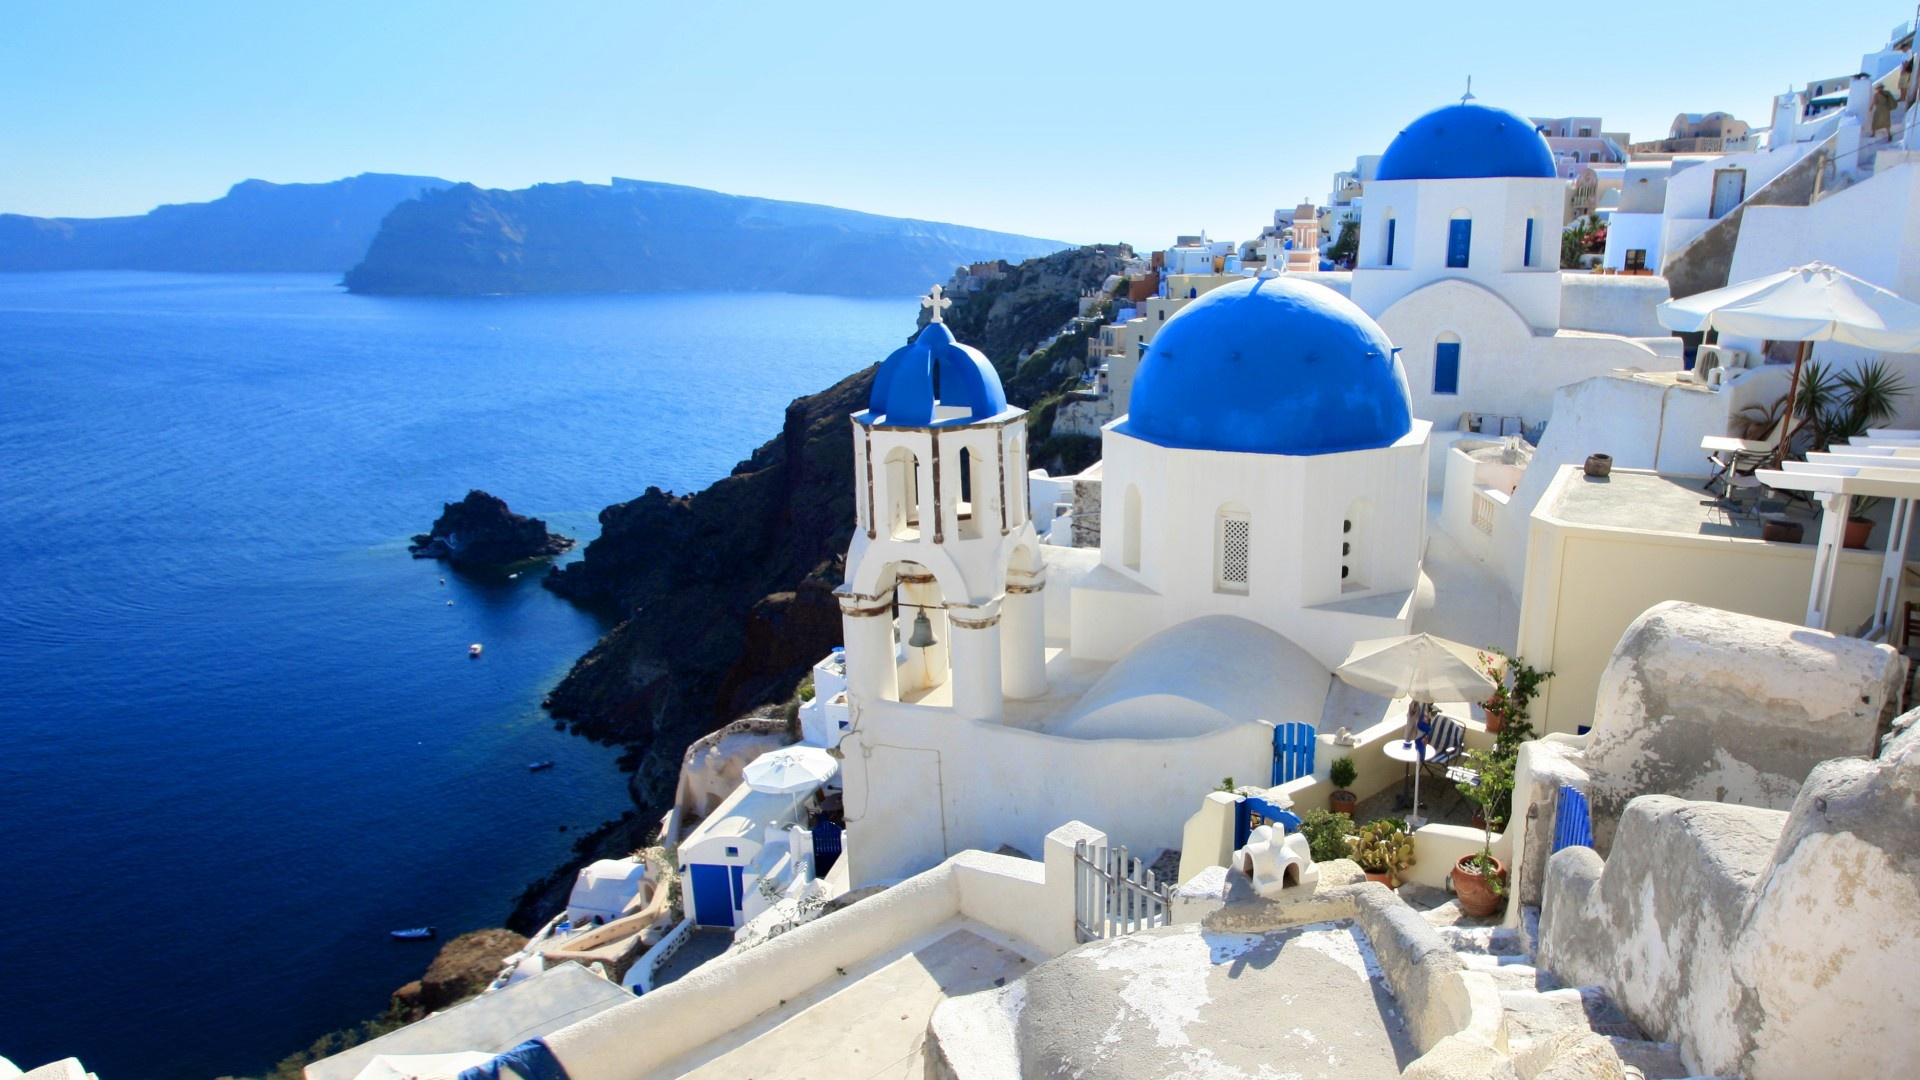 Santorini Wallpaper Deskto HD Wallpaper Background Images 1920x1080